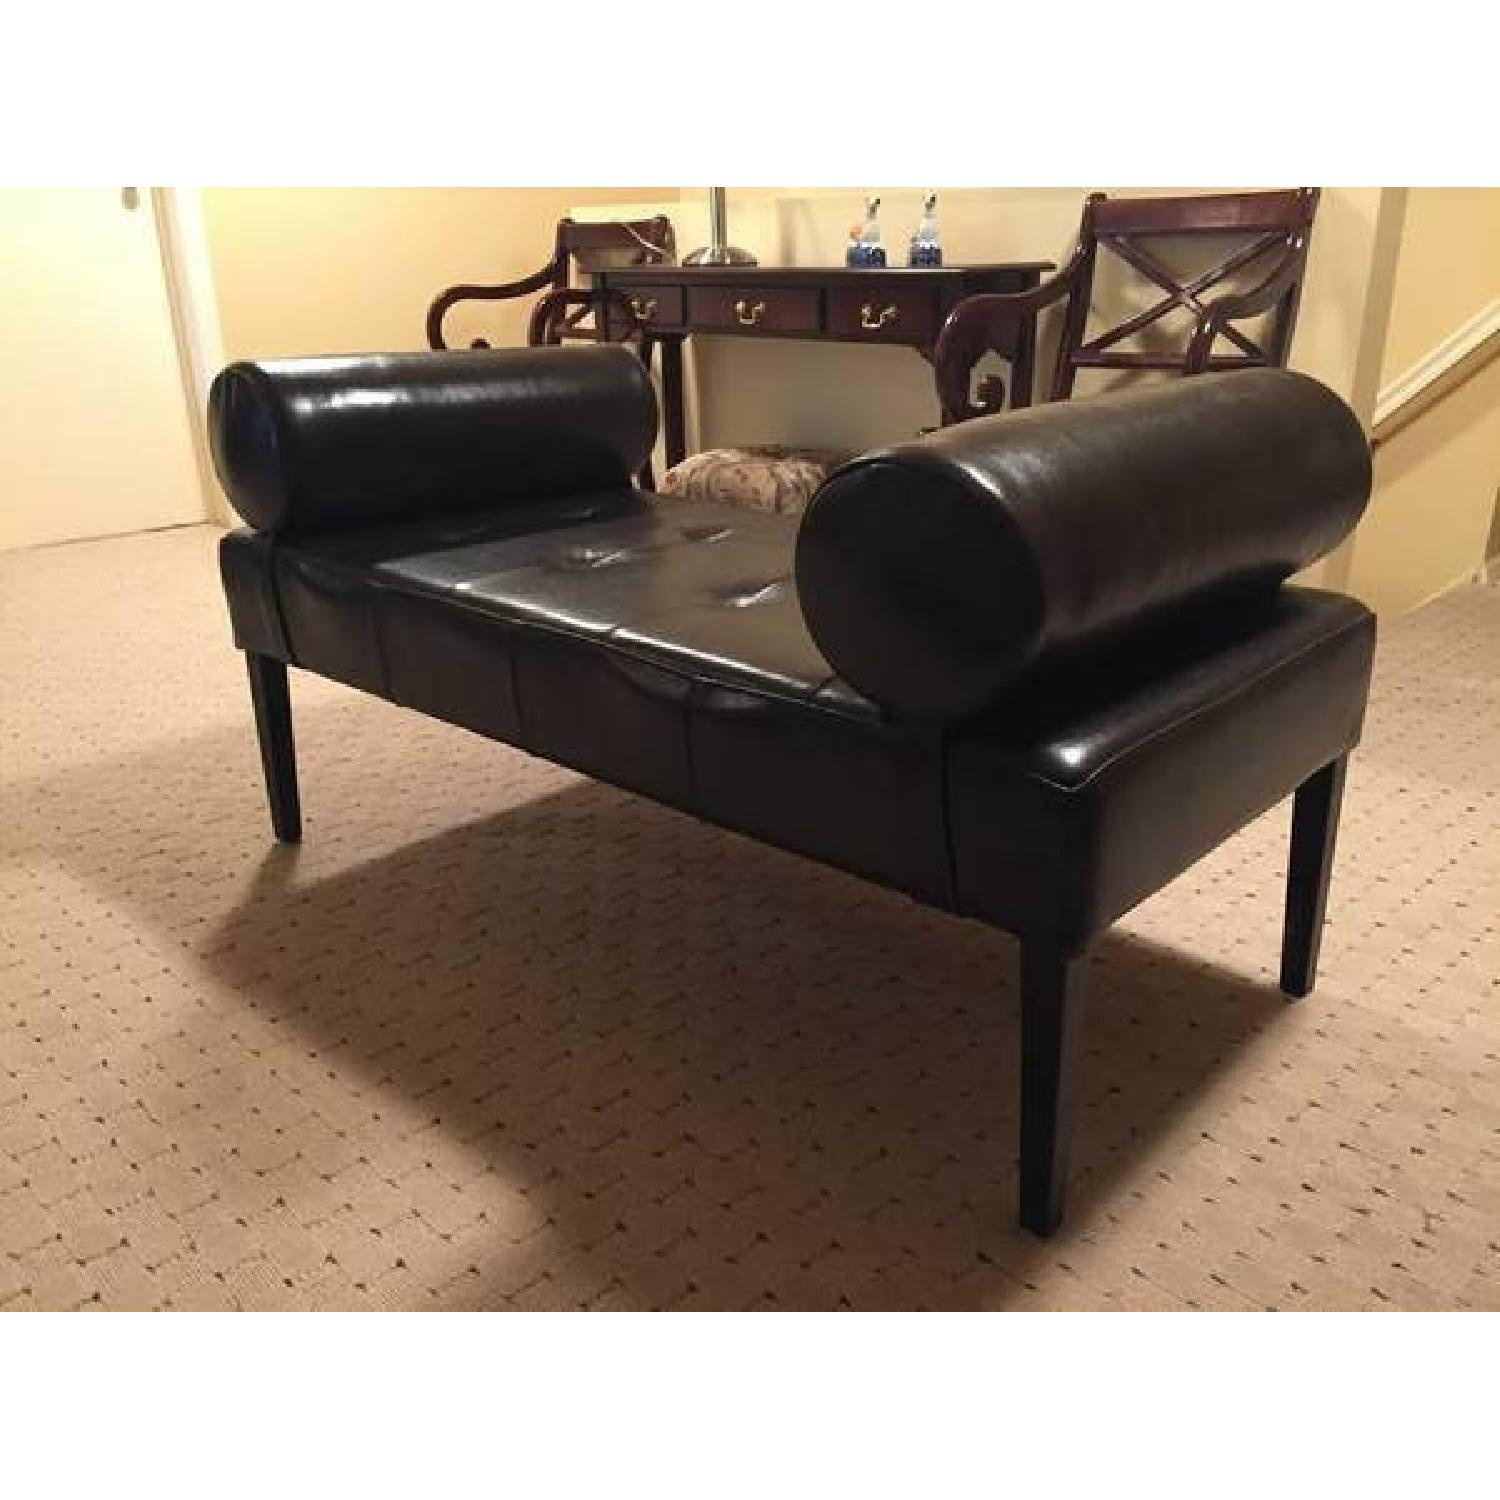 Leather Bench with Arms - image-2